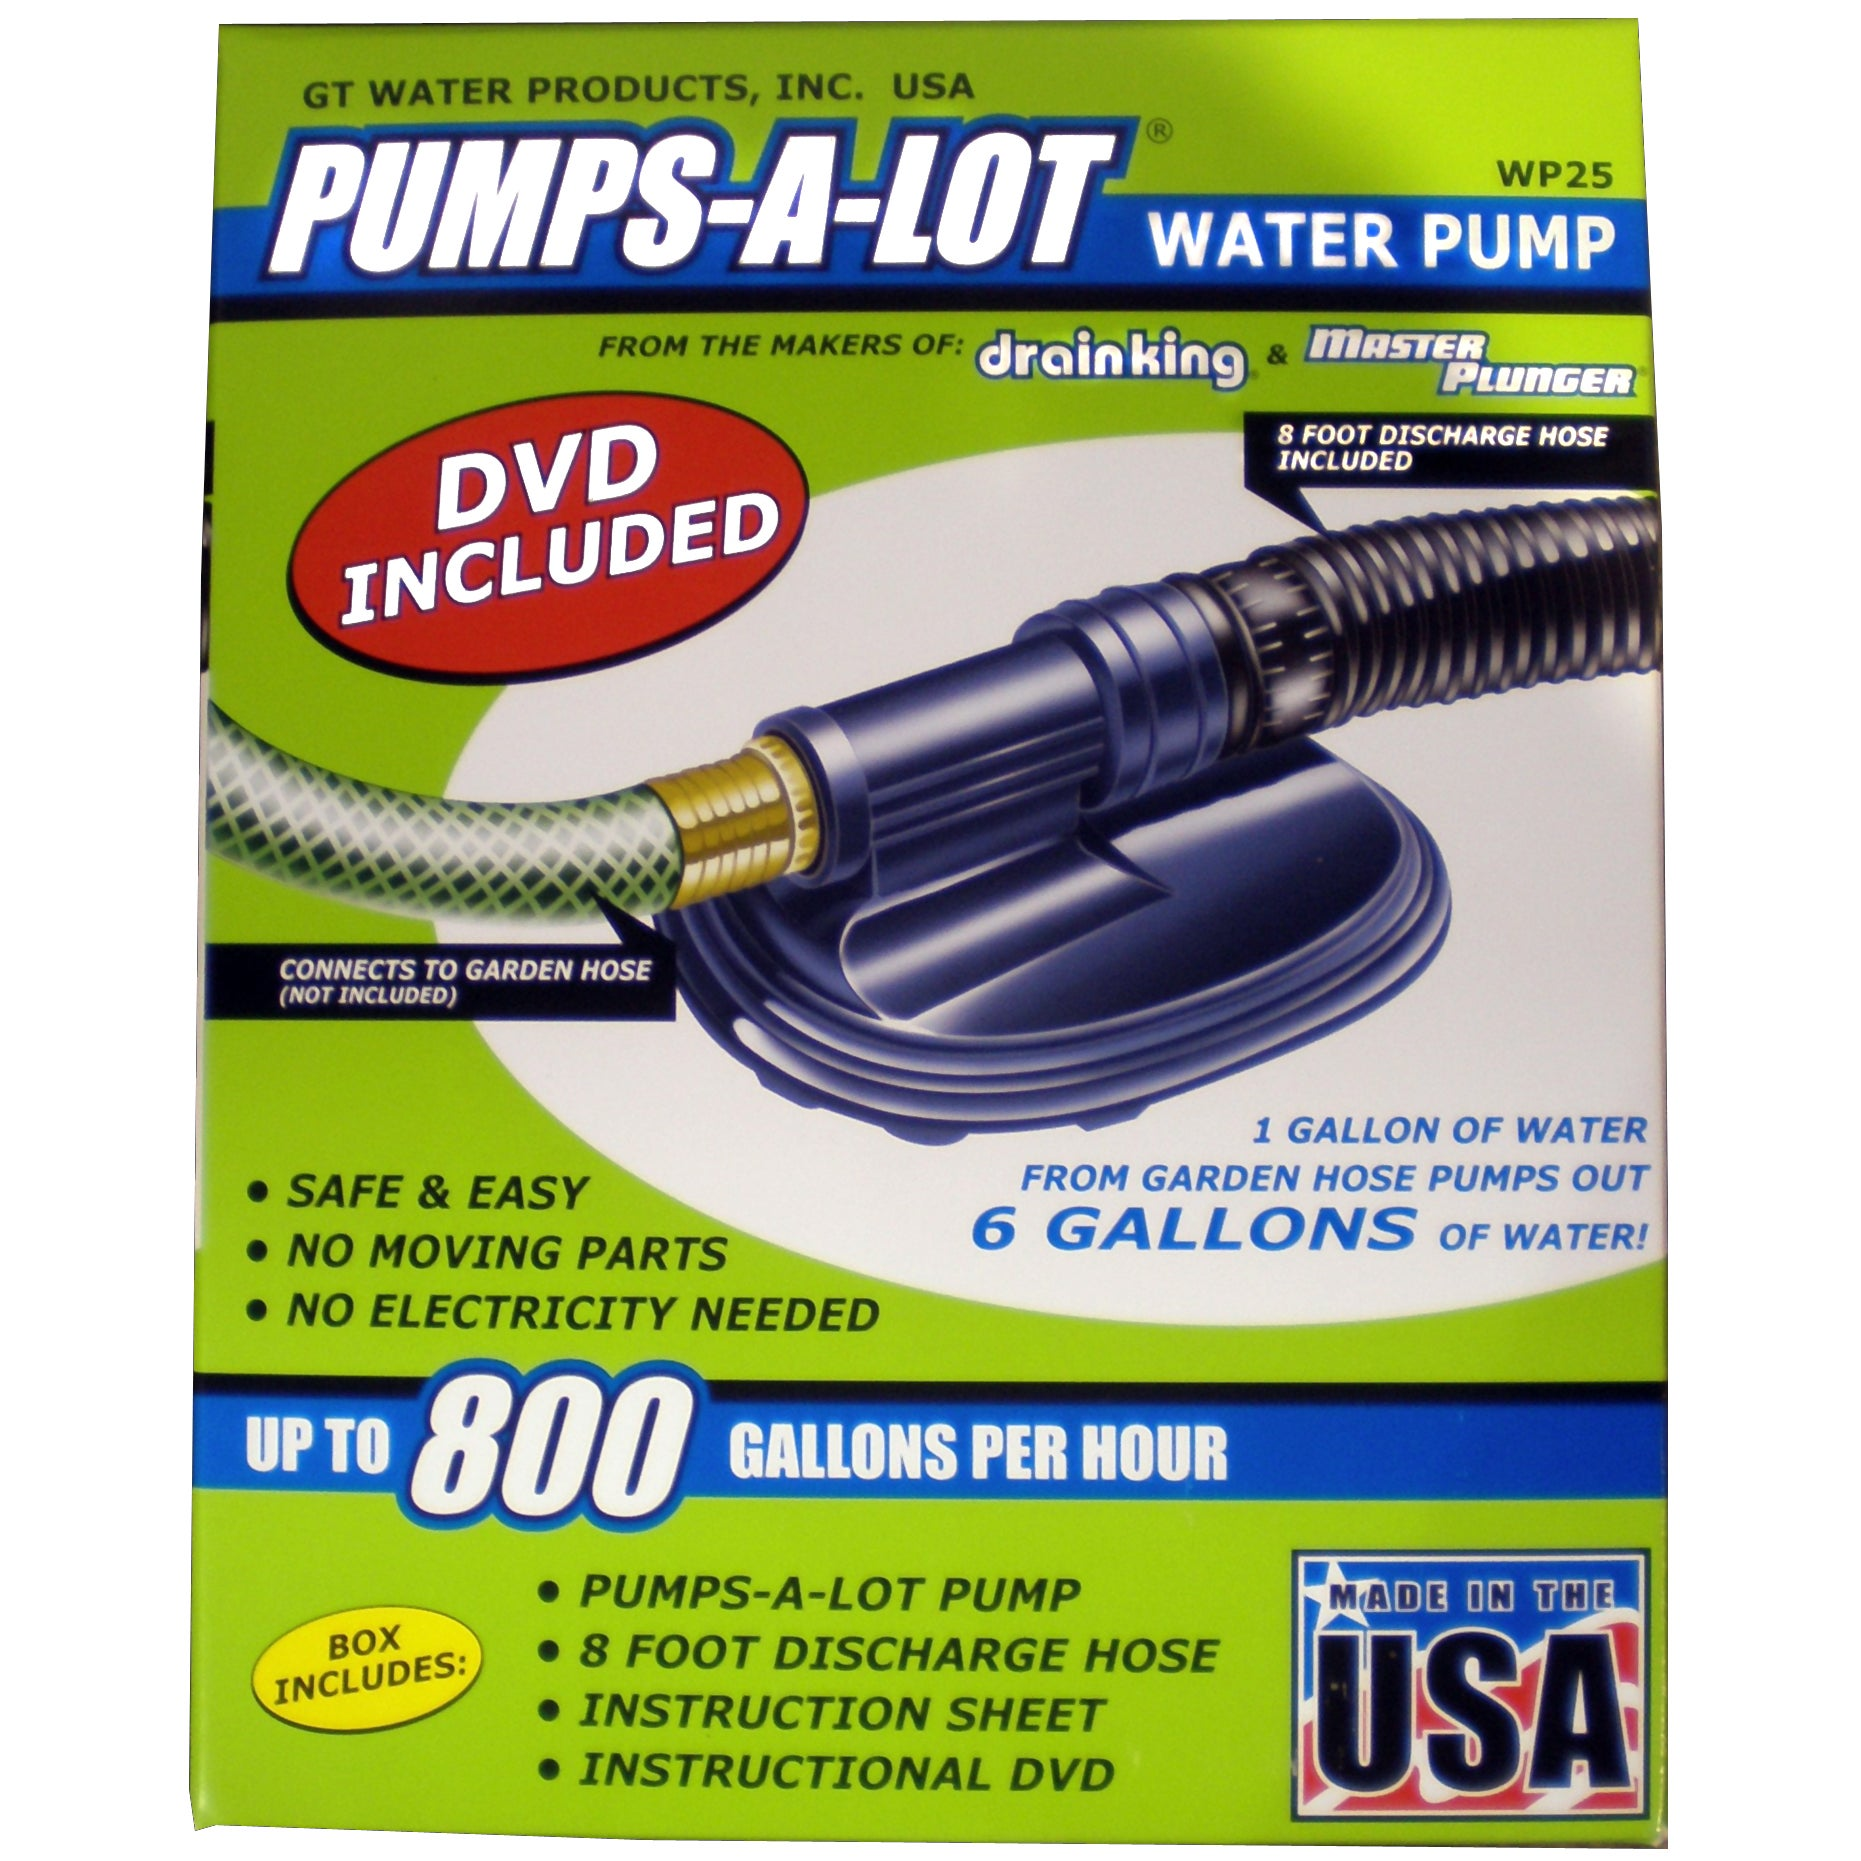 Ace Hardware Gt Water Products WP25 Pumps-A-Lot Water Pum...